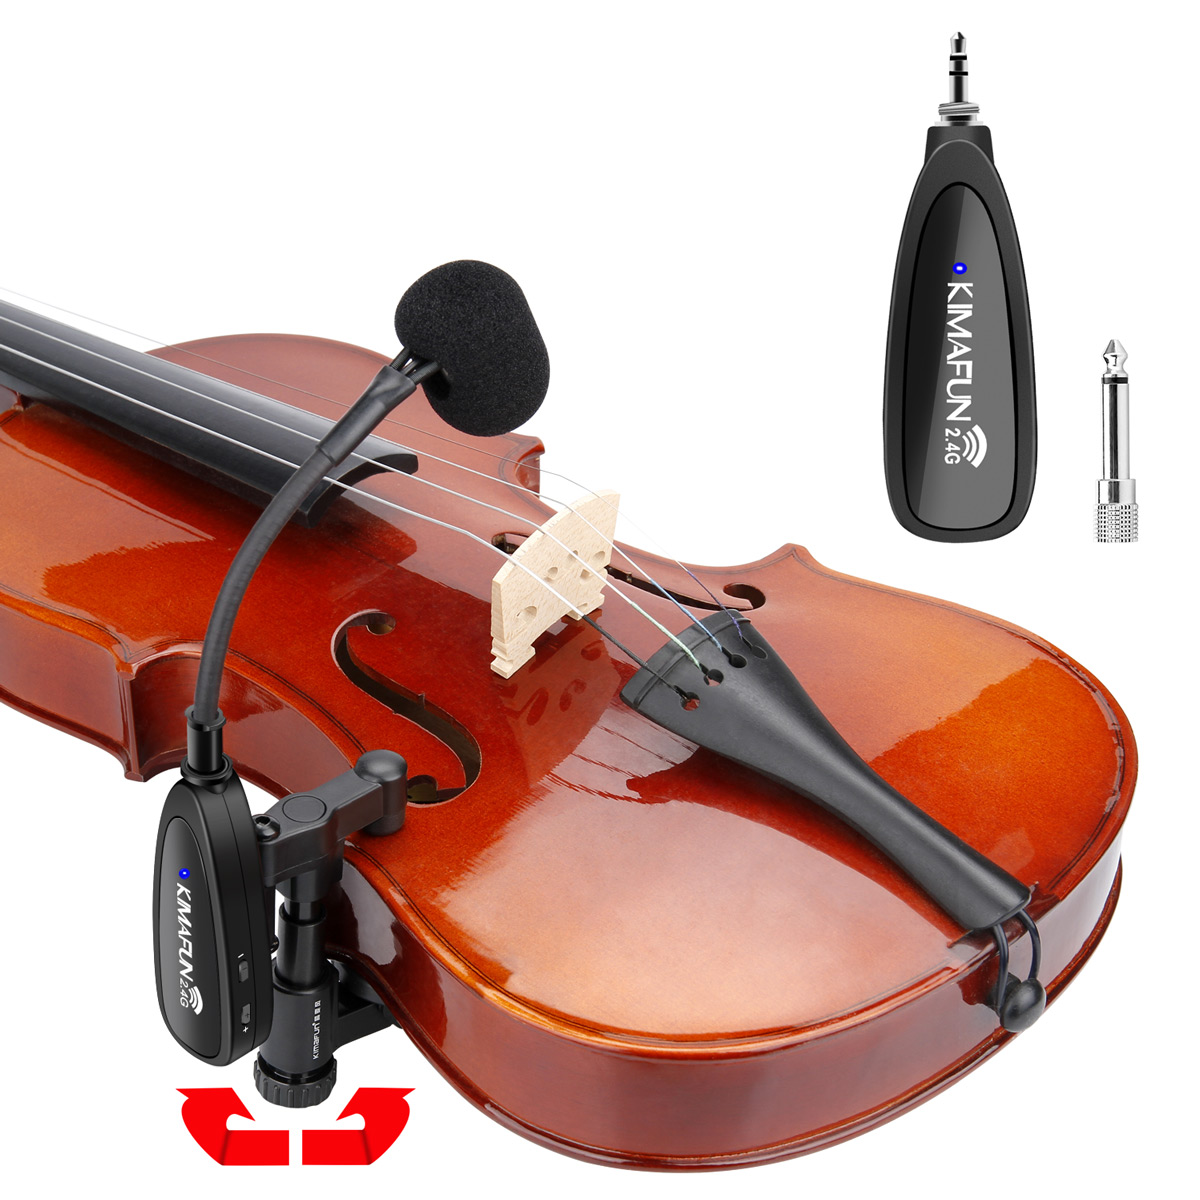 KM-CX220-3 KIMAFUN Violin microphone 2.4G Wireless Instrument Gooseneck Microphone Professional Musical Condenser Microphone for Violin